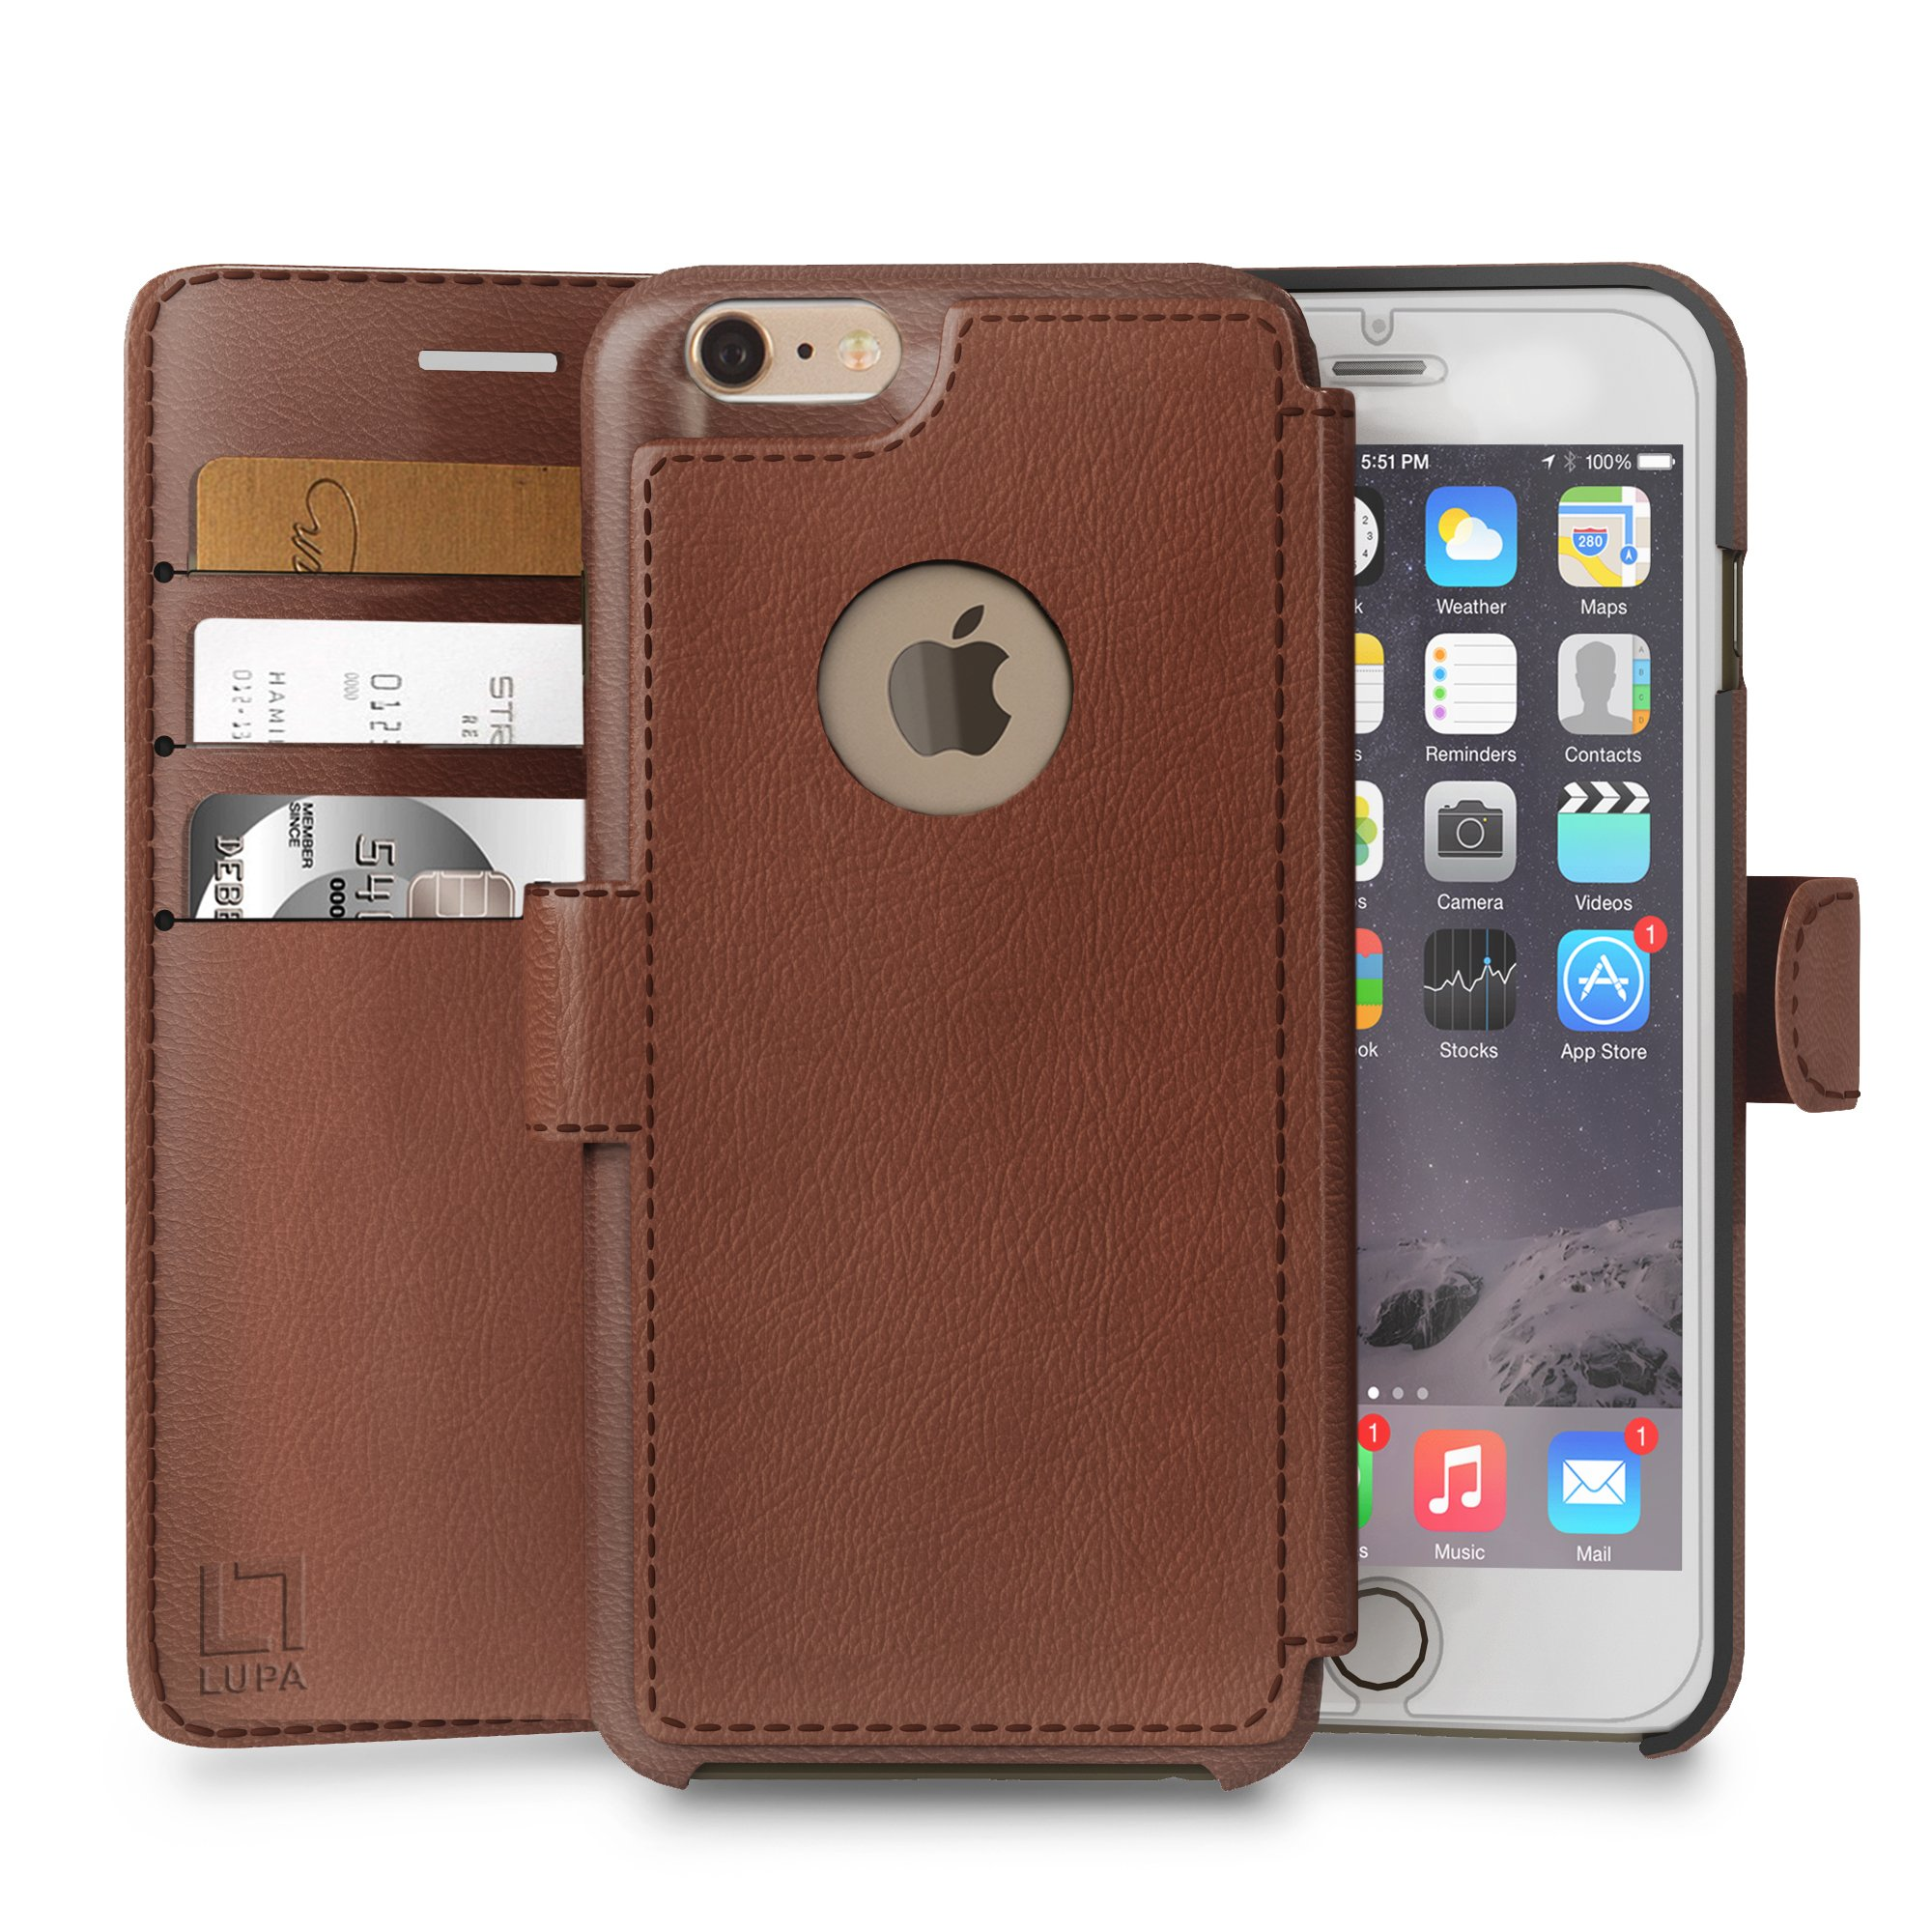 iPhone 6,6s Wallet Case,Durable and Slim, Lightweight with Classic Design & Ultra-Strong Magnetic Closure, Faux Leather, Light Brown, Apple 6/6s (4.7 in)